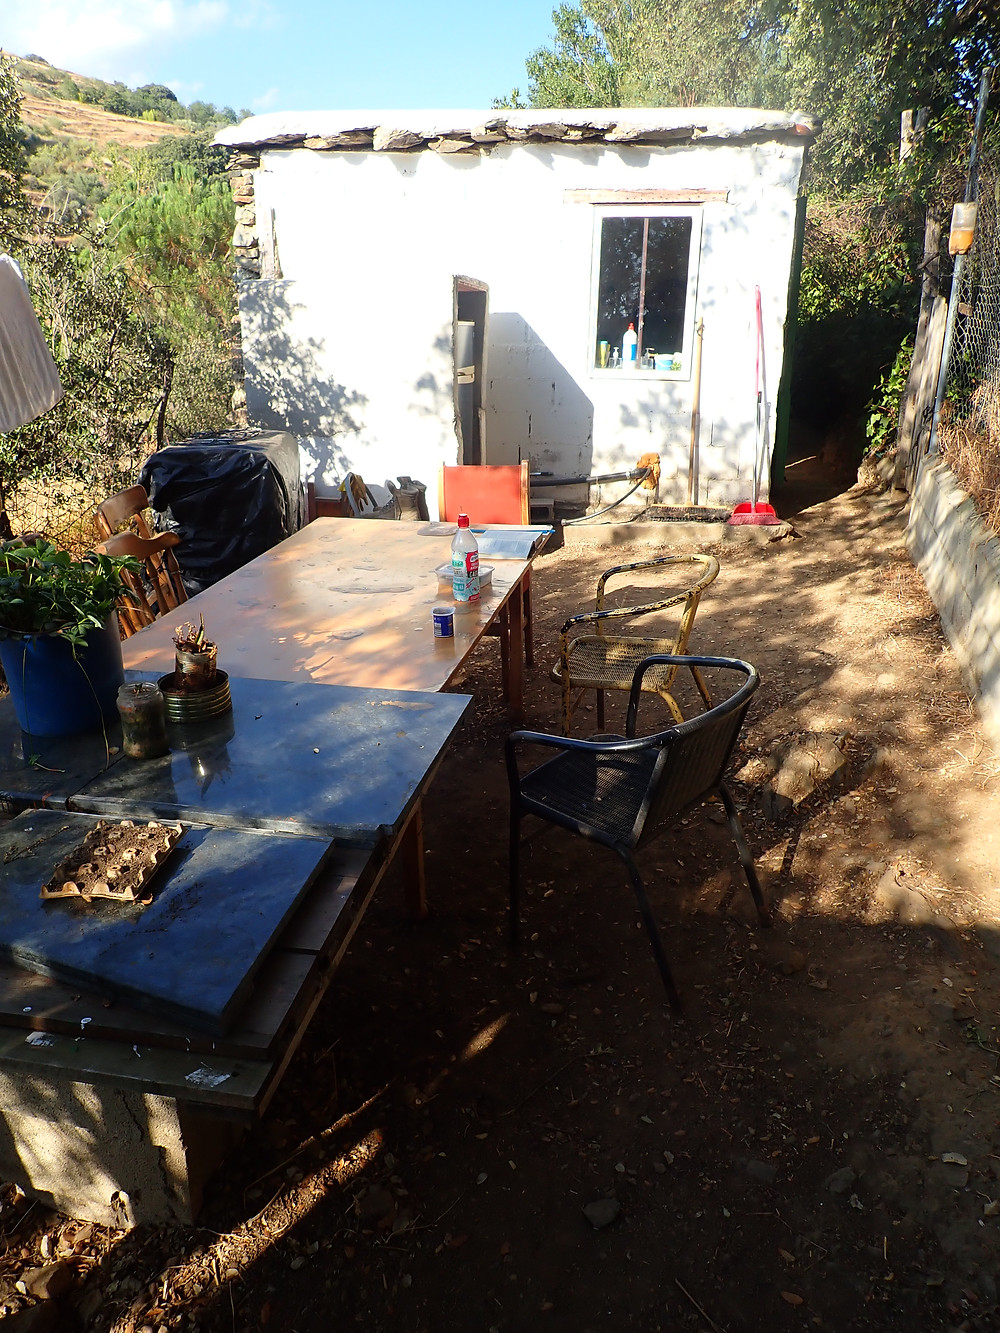 Tables and chairs outside the helpers kitchen, a place to chill and eat